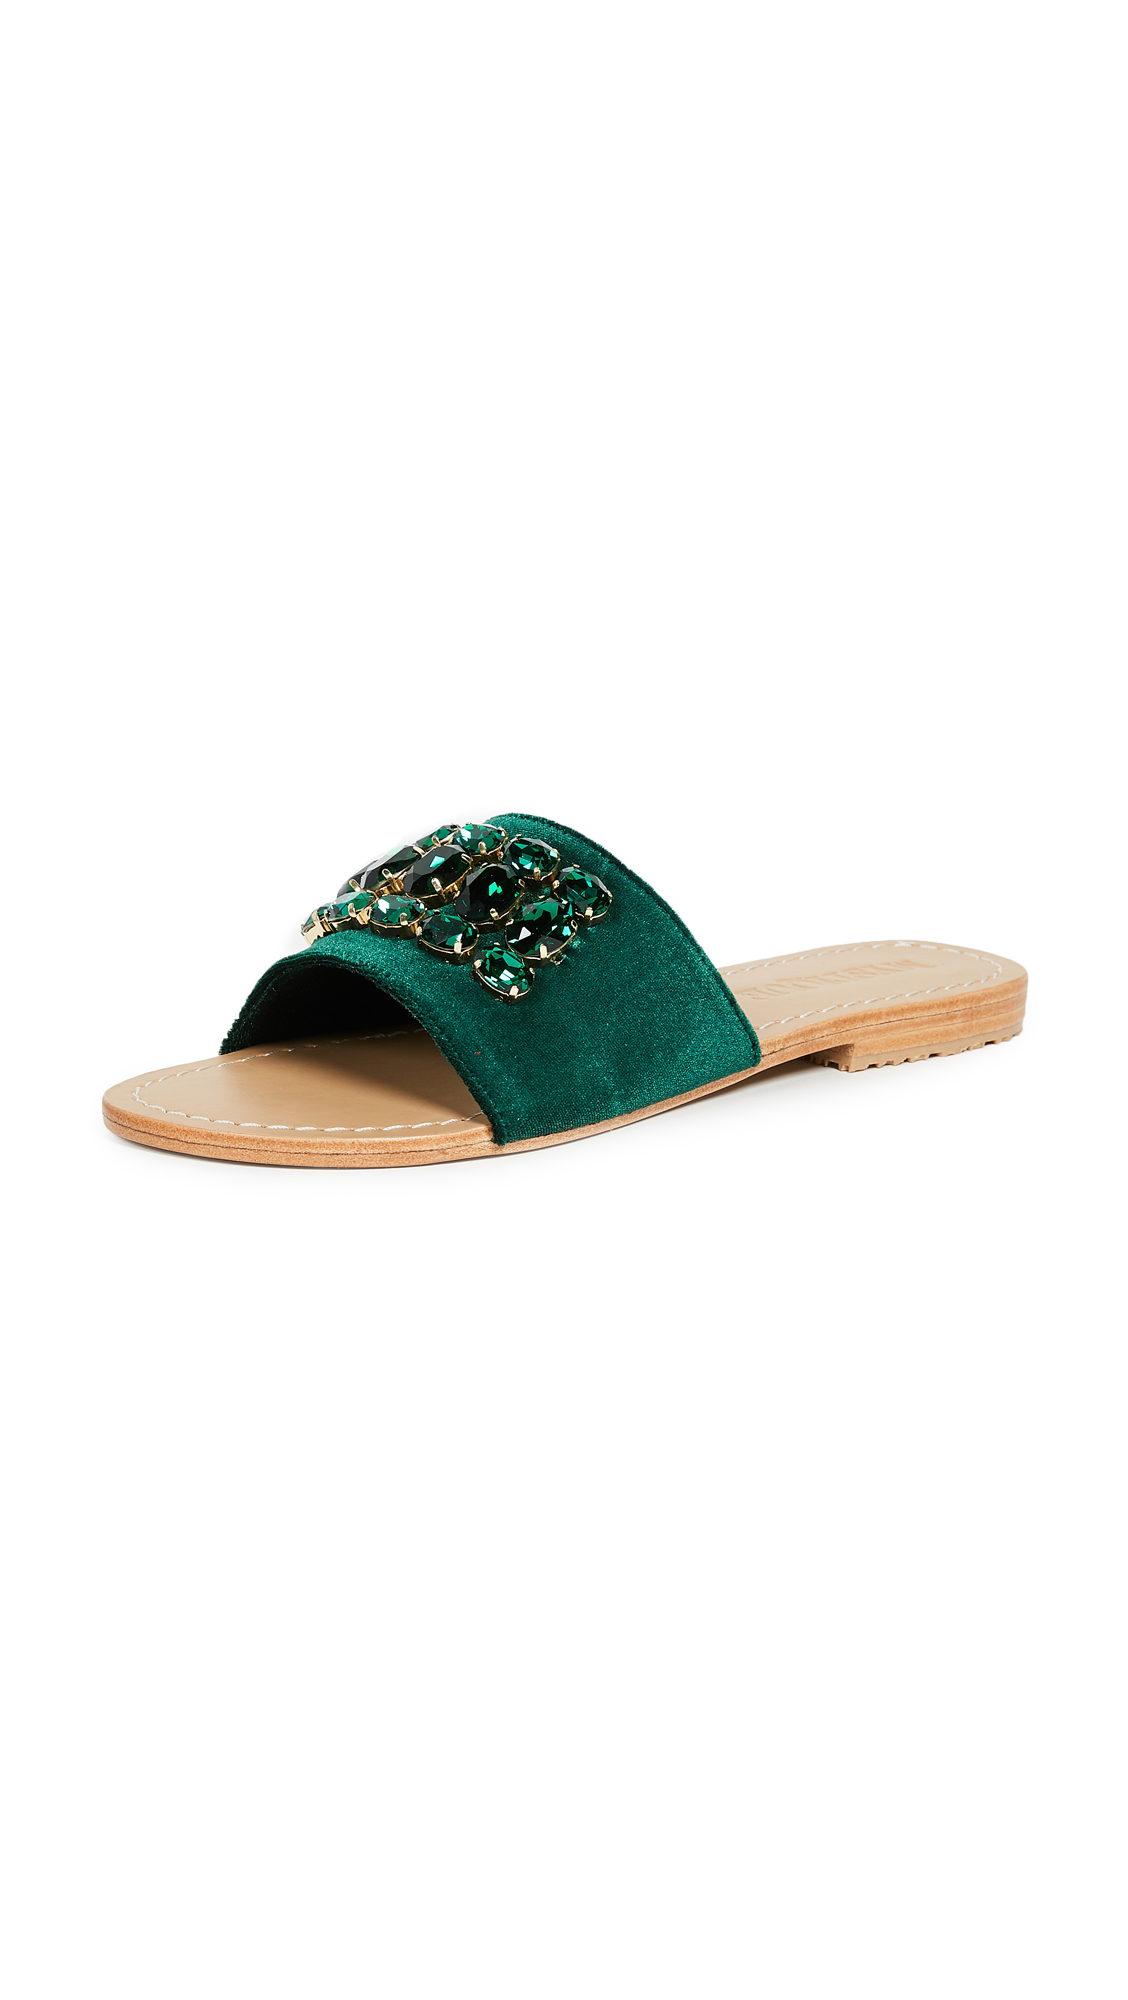 Mystique Jewel Slides - Emerald